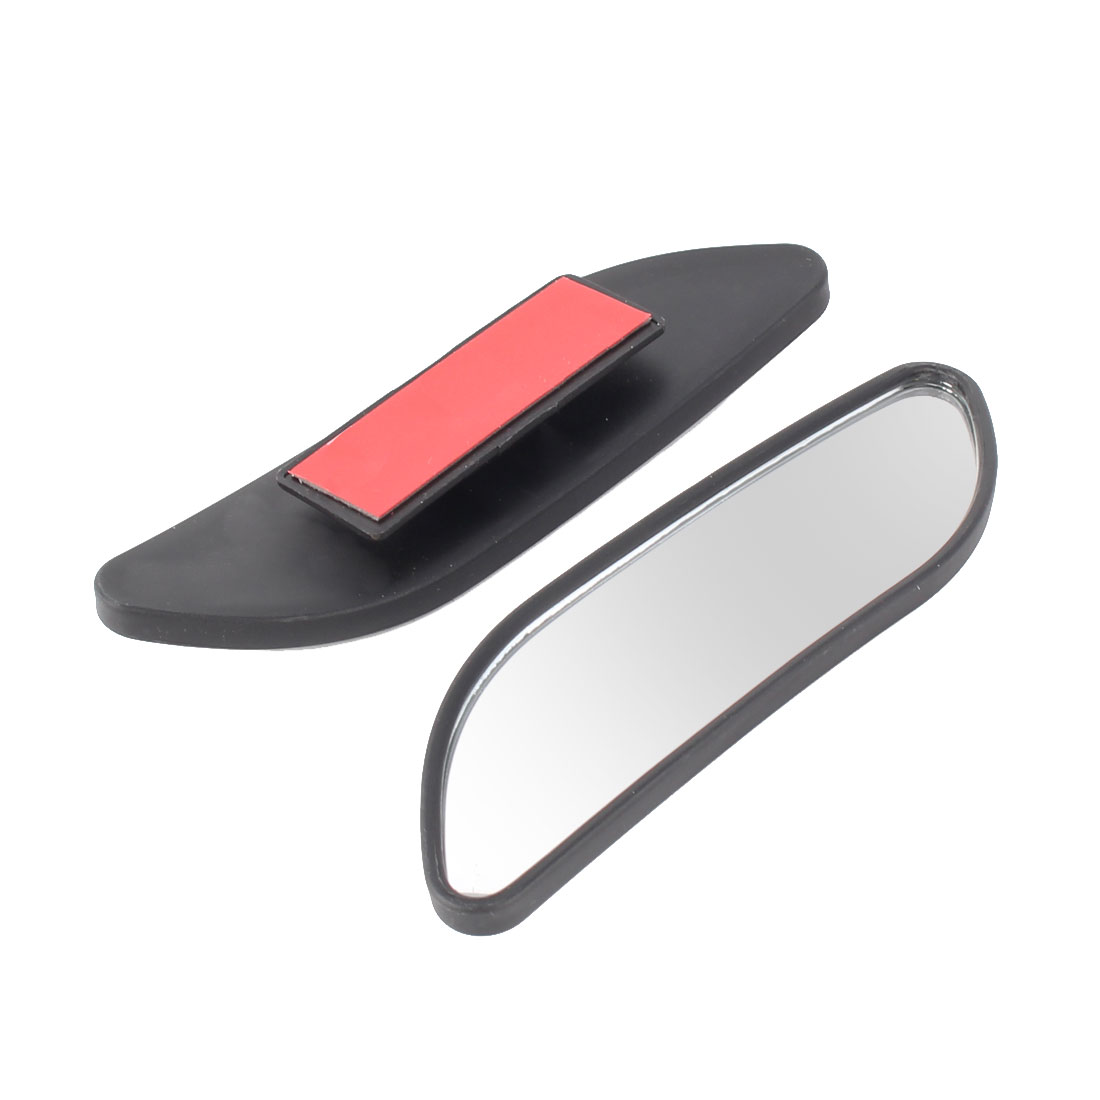 Car Automobile Parallelogram Shape Convex Rear View Blind Spot Wide Mirror 12cm Long 2pcs